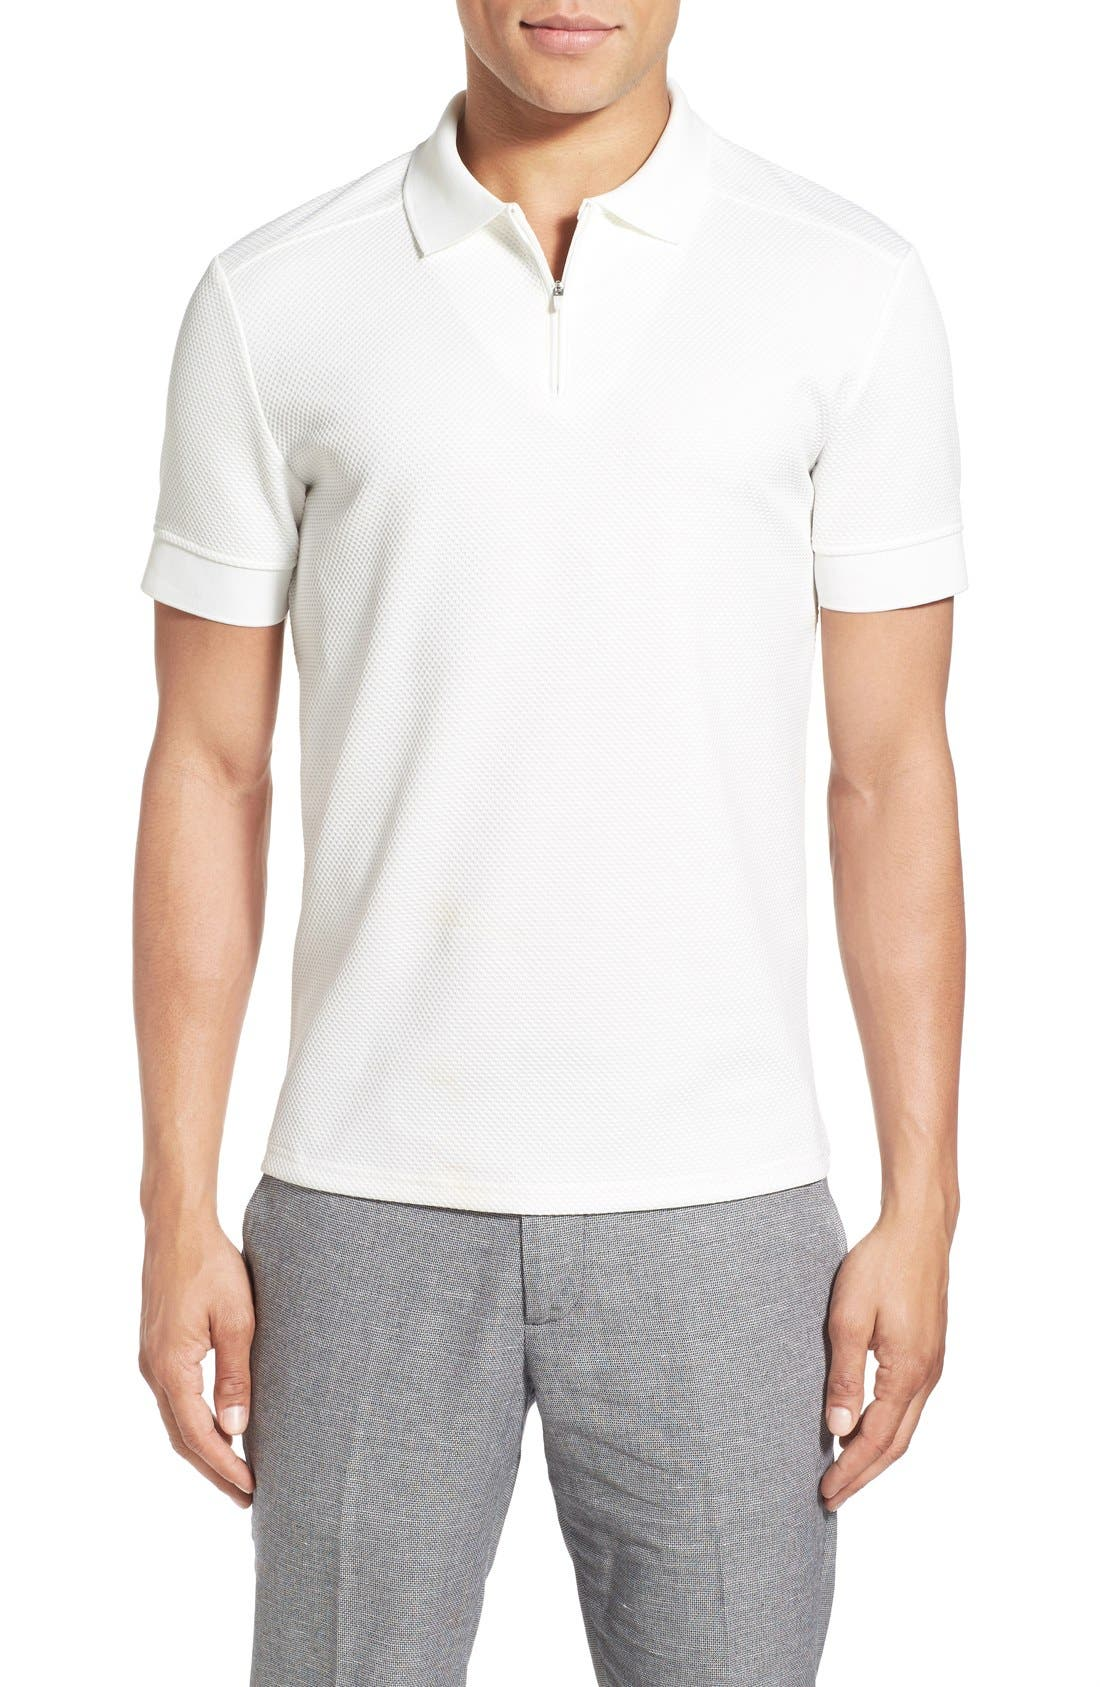 Alternate Image 1 Selected - Vince Camuto Slim Fit Mesh Polo